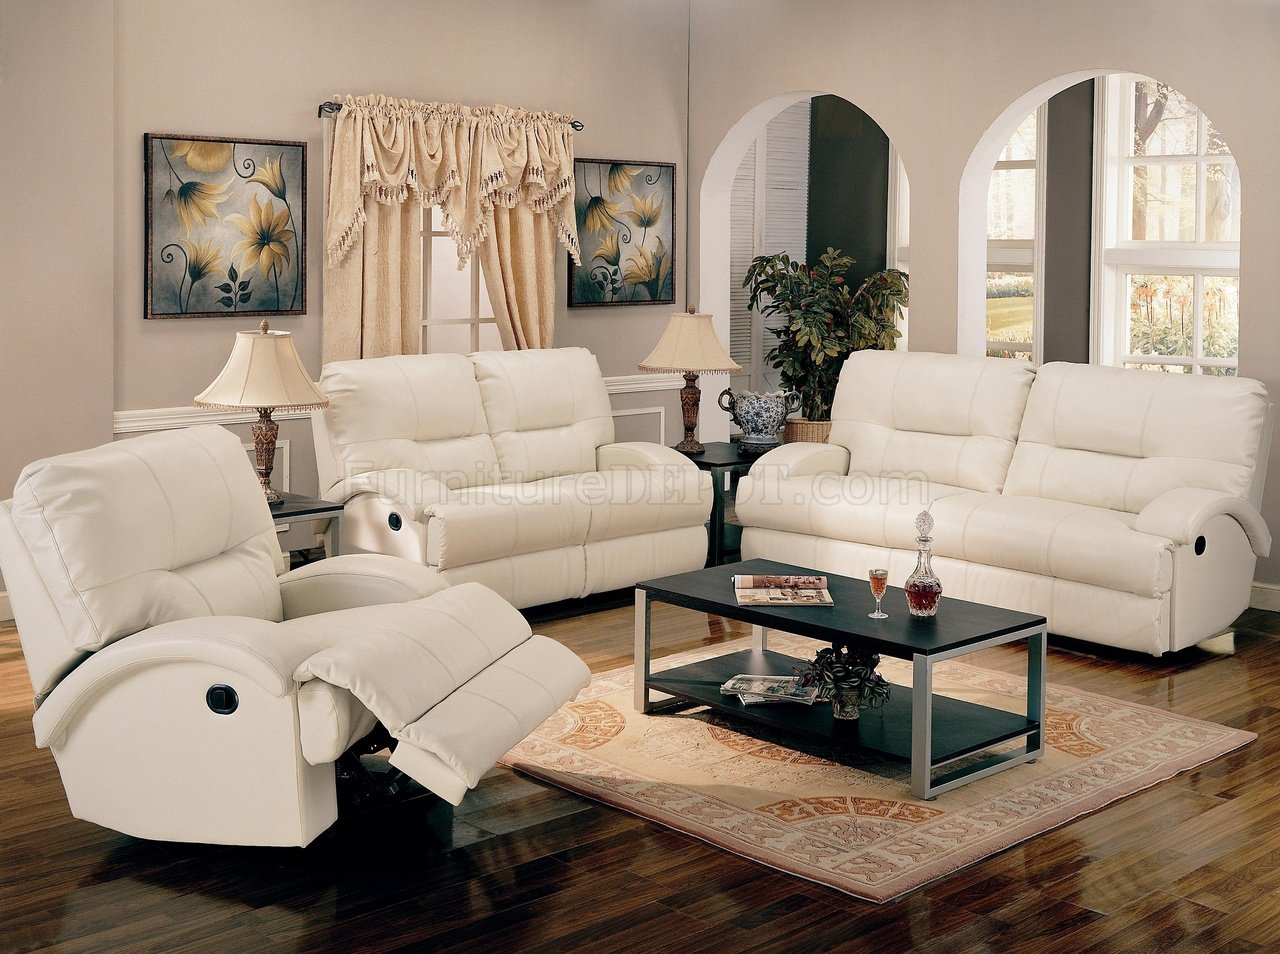 White Bonded Leather Motion Living Room Sofa W Options